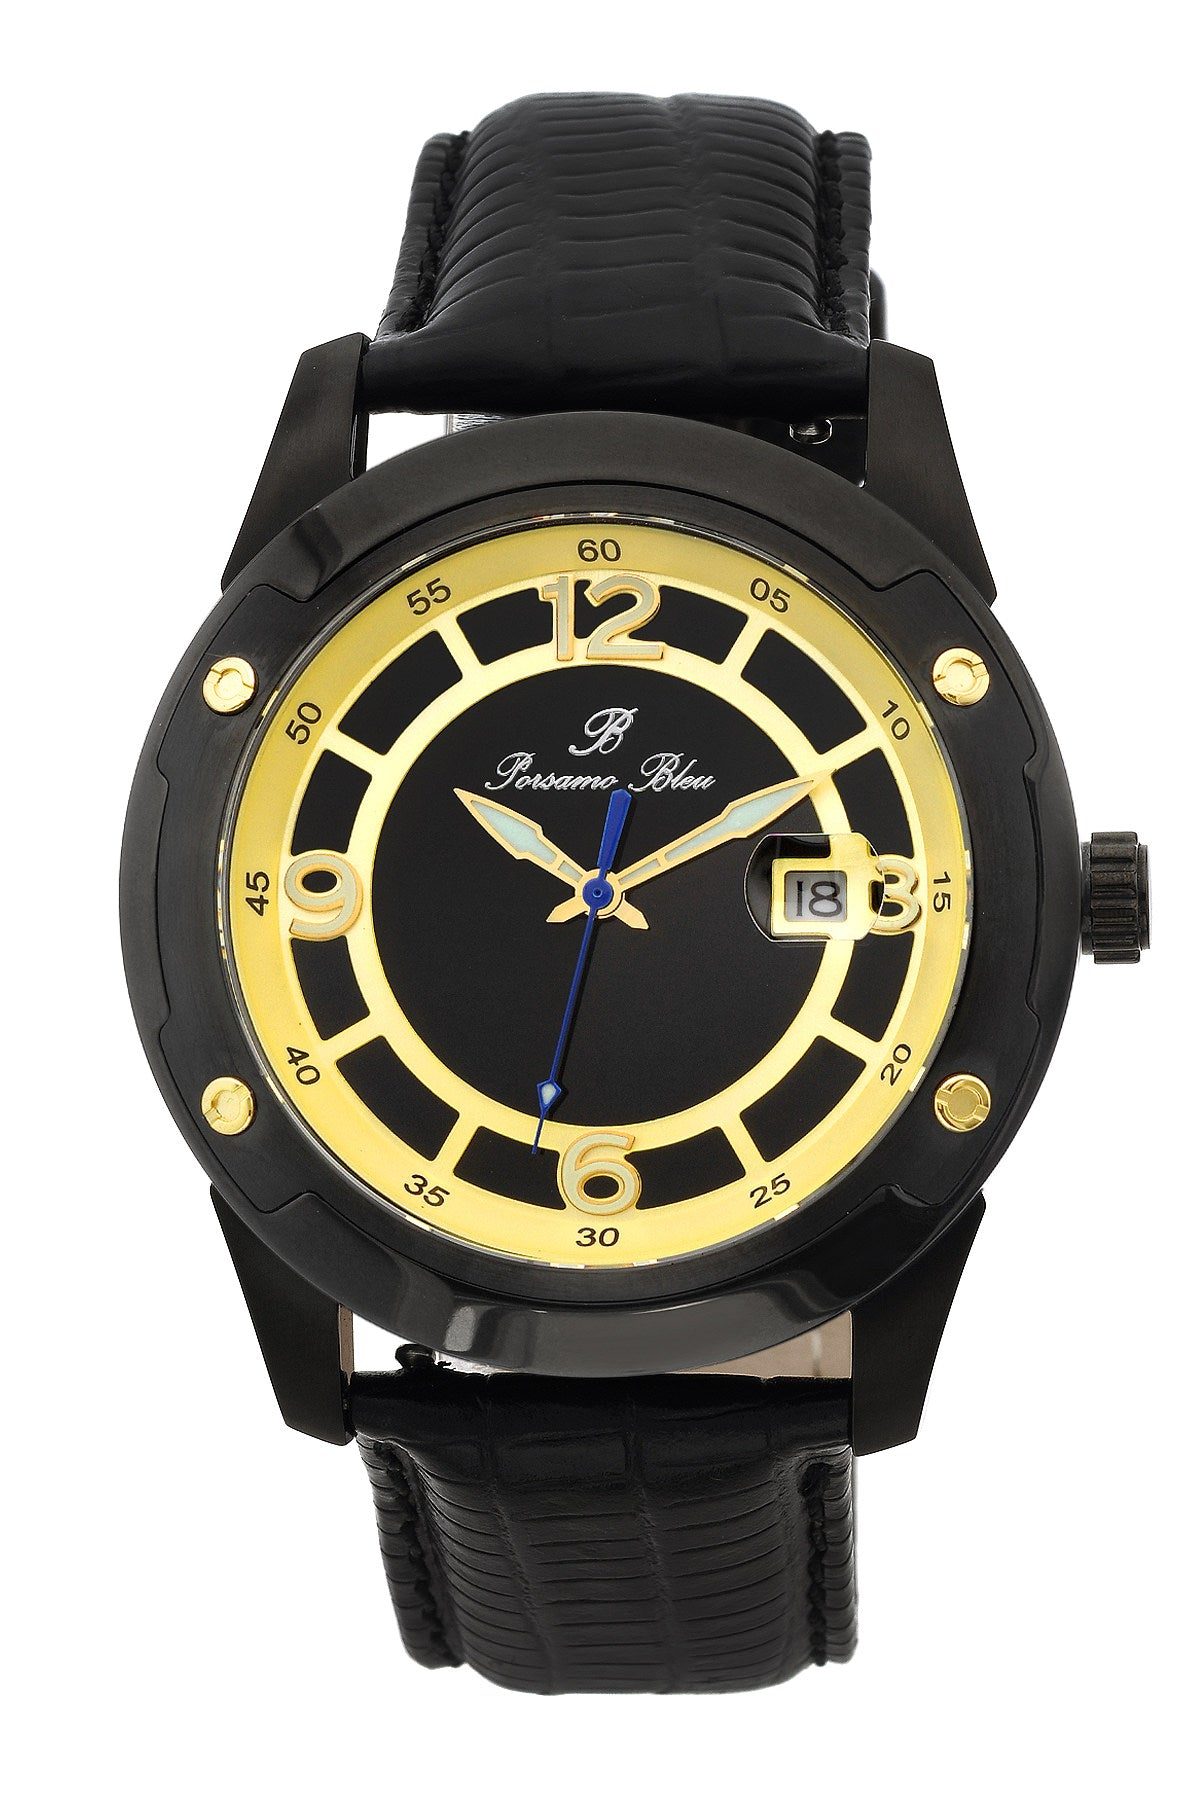 Porsamo Bleu Tokyo luxury Automatic men's watch, genuine leather band, gold, black 175ATOL